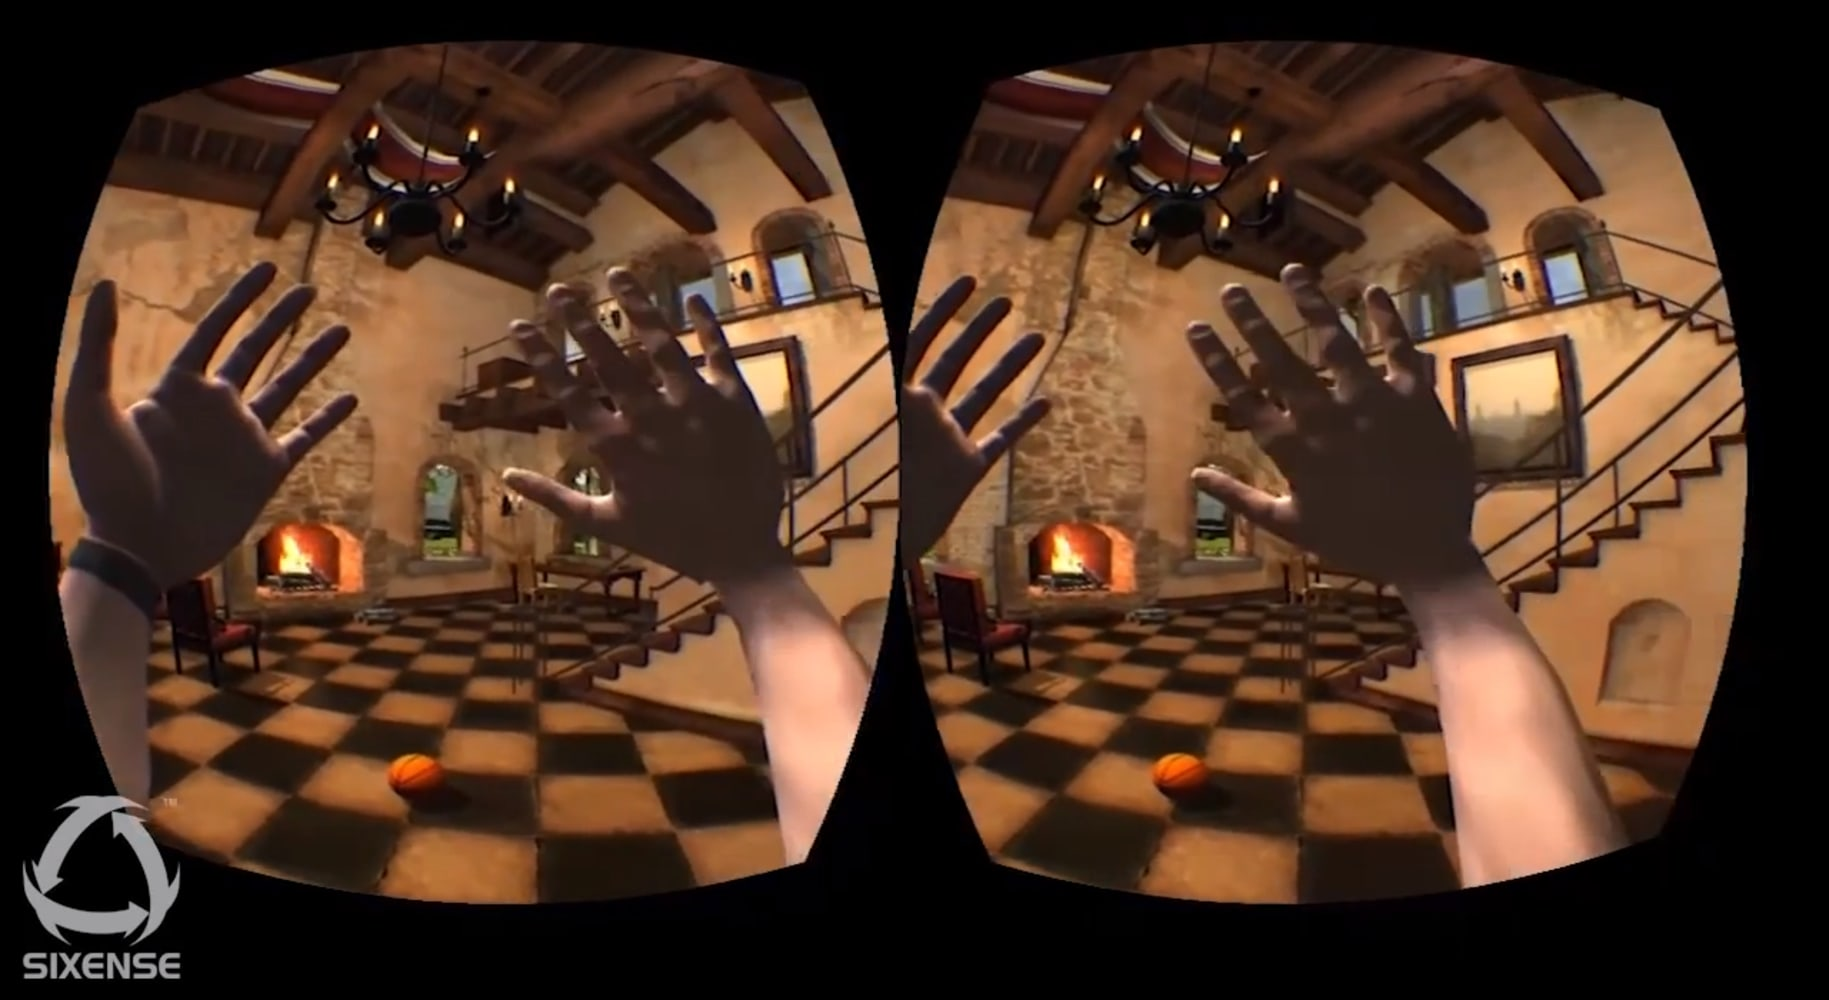 Virtual realitygaming is nearly here — we just need the right